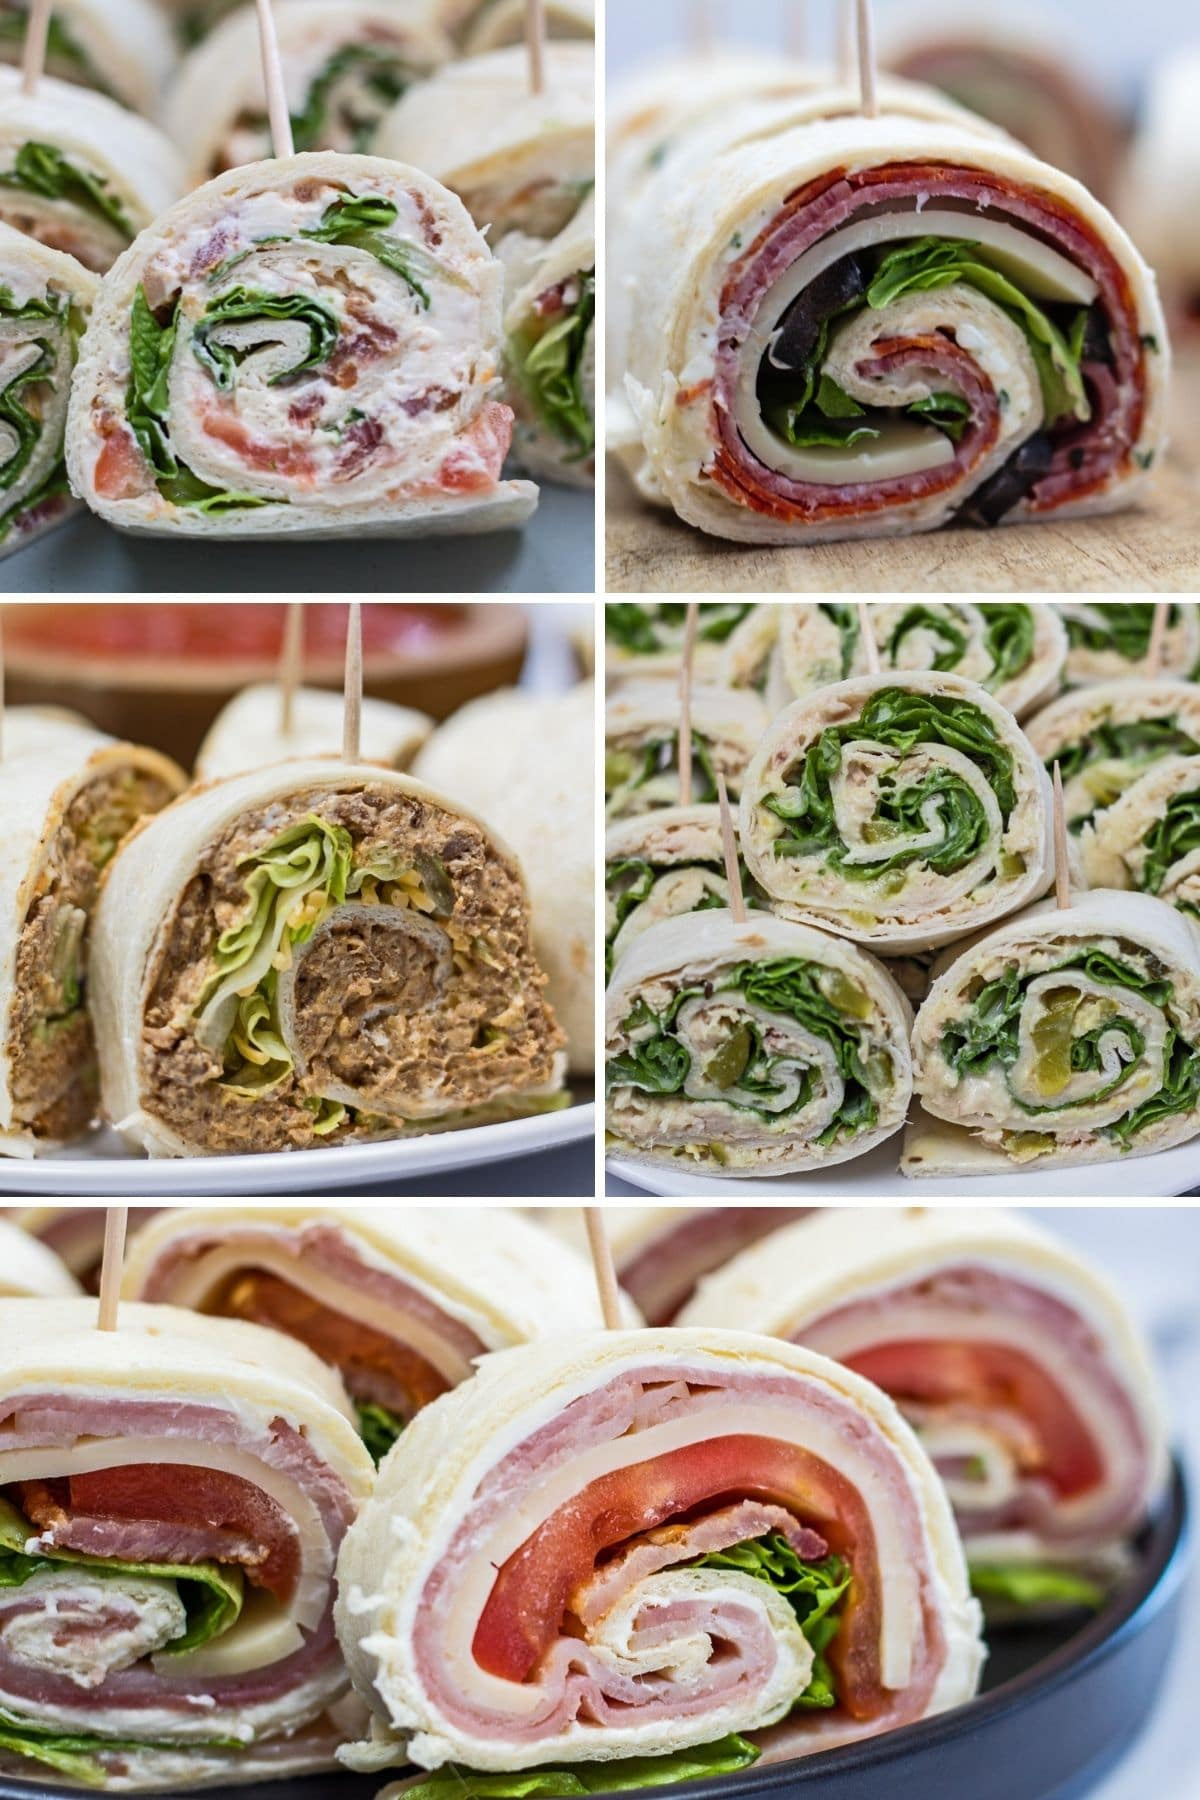 Pinwheel sandwiches collage showing 5 different rollup flavors.